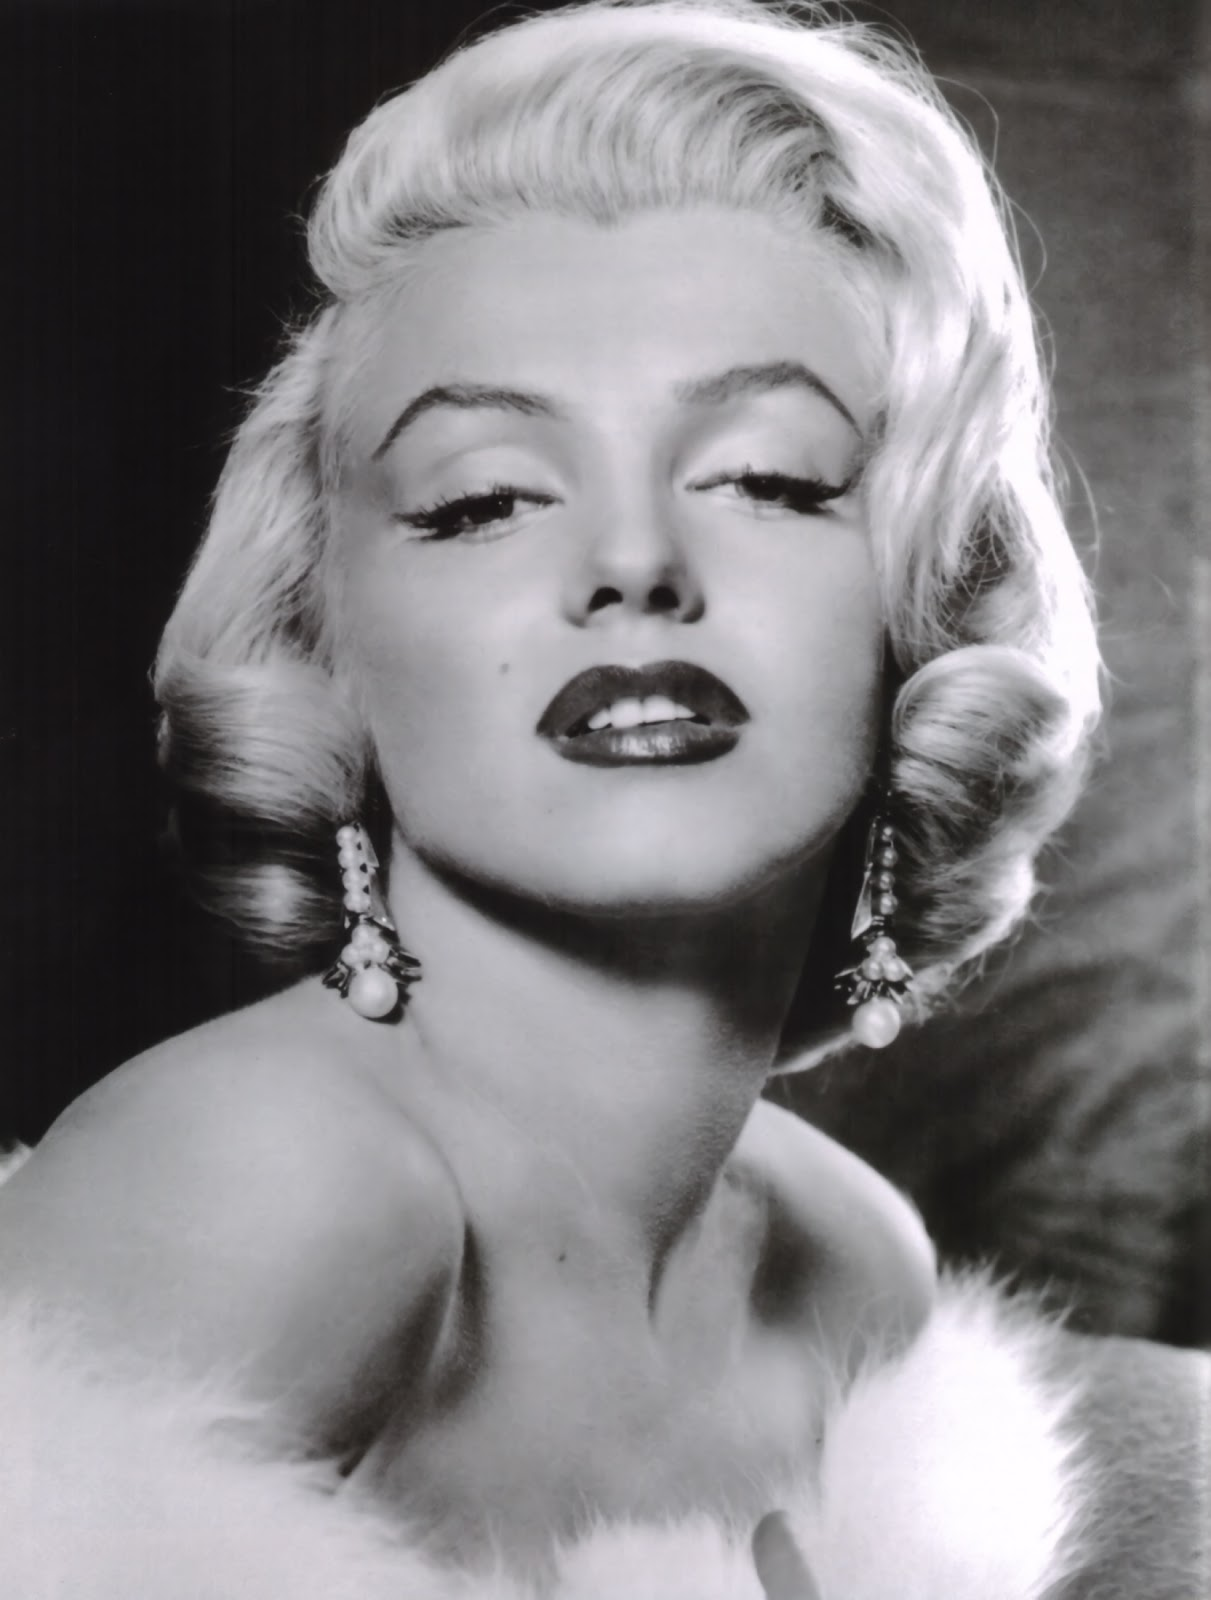 Marilyn Monroe Living Room Decor: It's The Pictures That Got Small ...: THE FRIDAY GLAMOUR 15